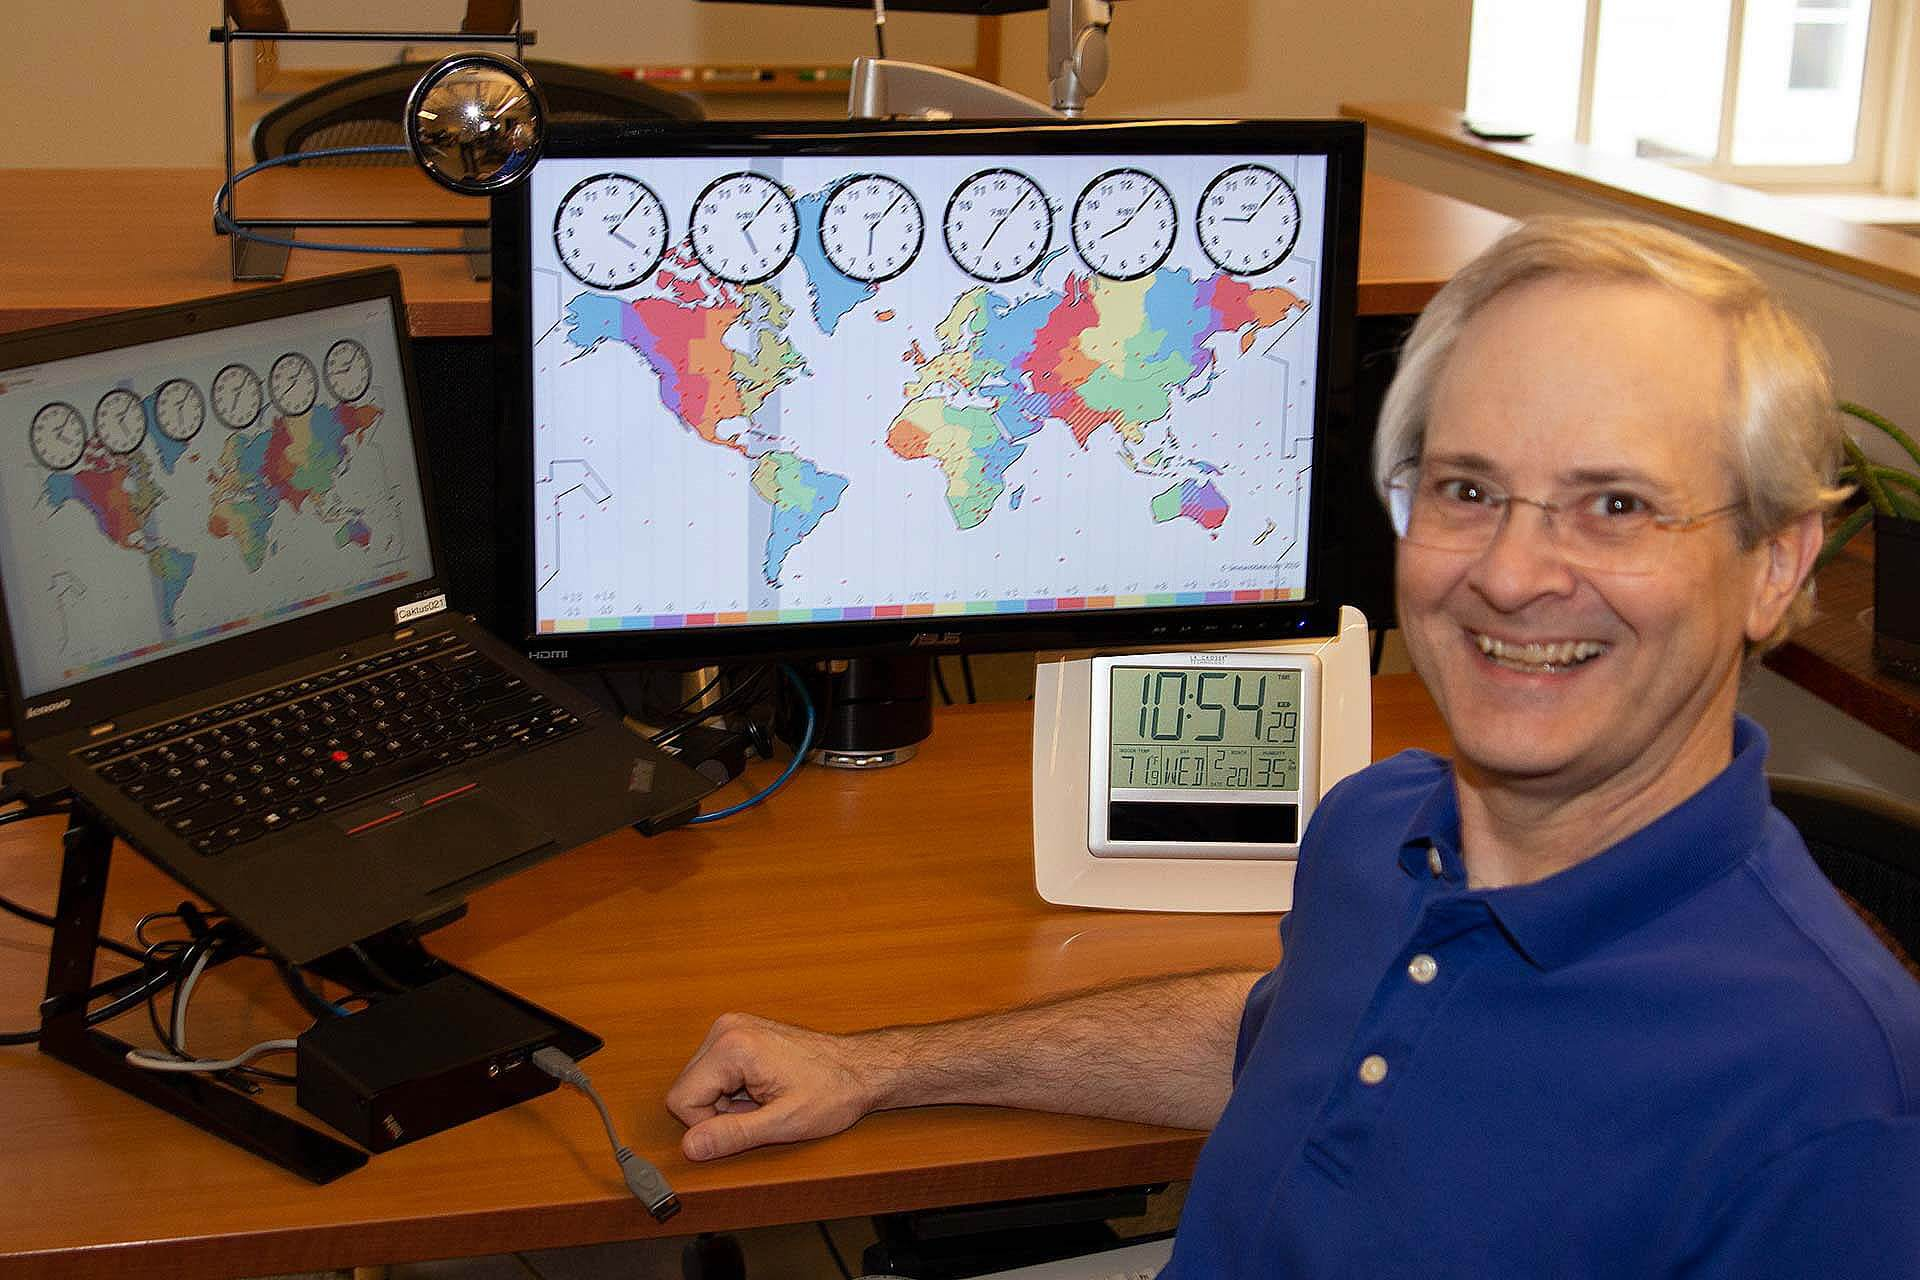 Developer and blog author Dan Poirier at his desk, with a graphic of timezones on his screen.